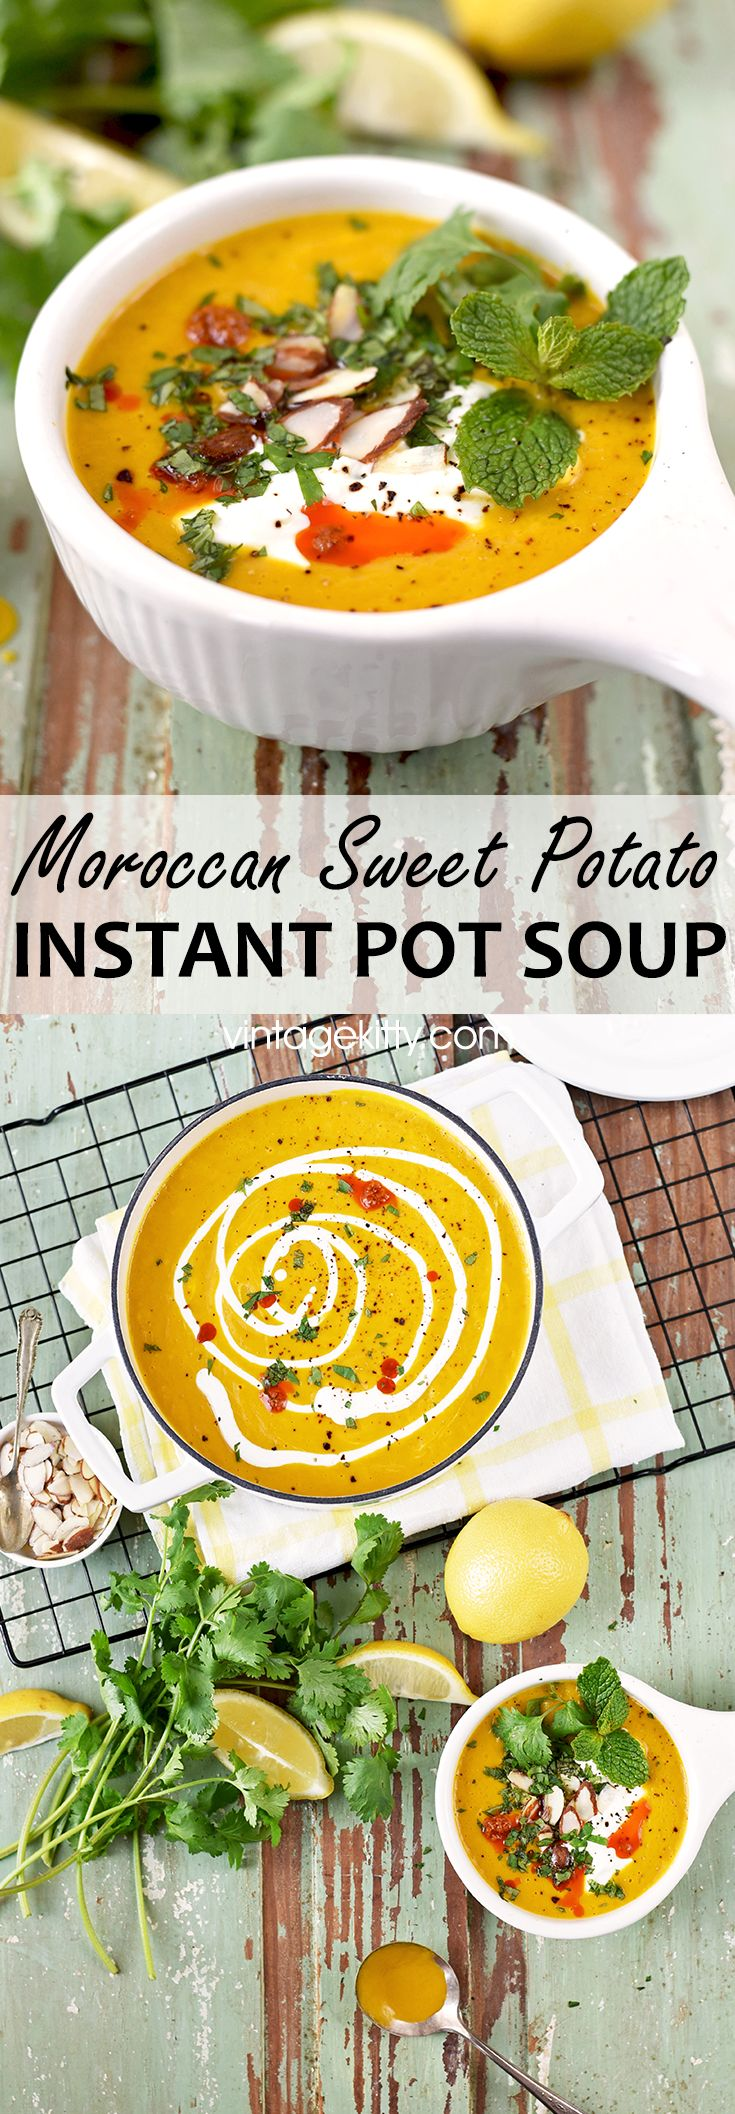 All the flavor in about half the time! Our Moroccan Pot Sweet Potato Soup is made in the Instant Pot for an easy weeknight meal. We've topped it with a minty herb mix and harissa for bold, low calorie flavor. #instantpot #healthyeats #easymeal